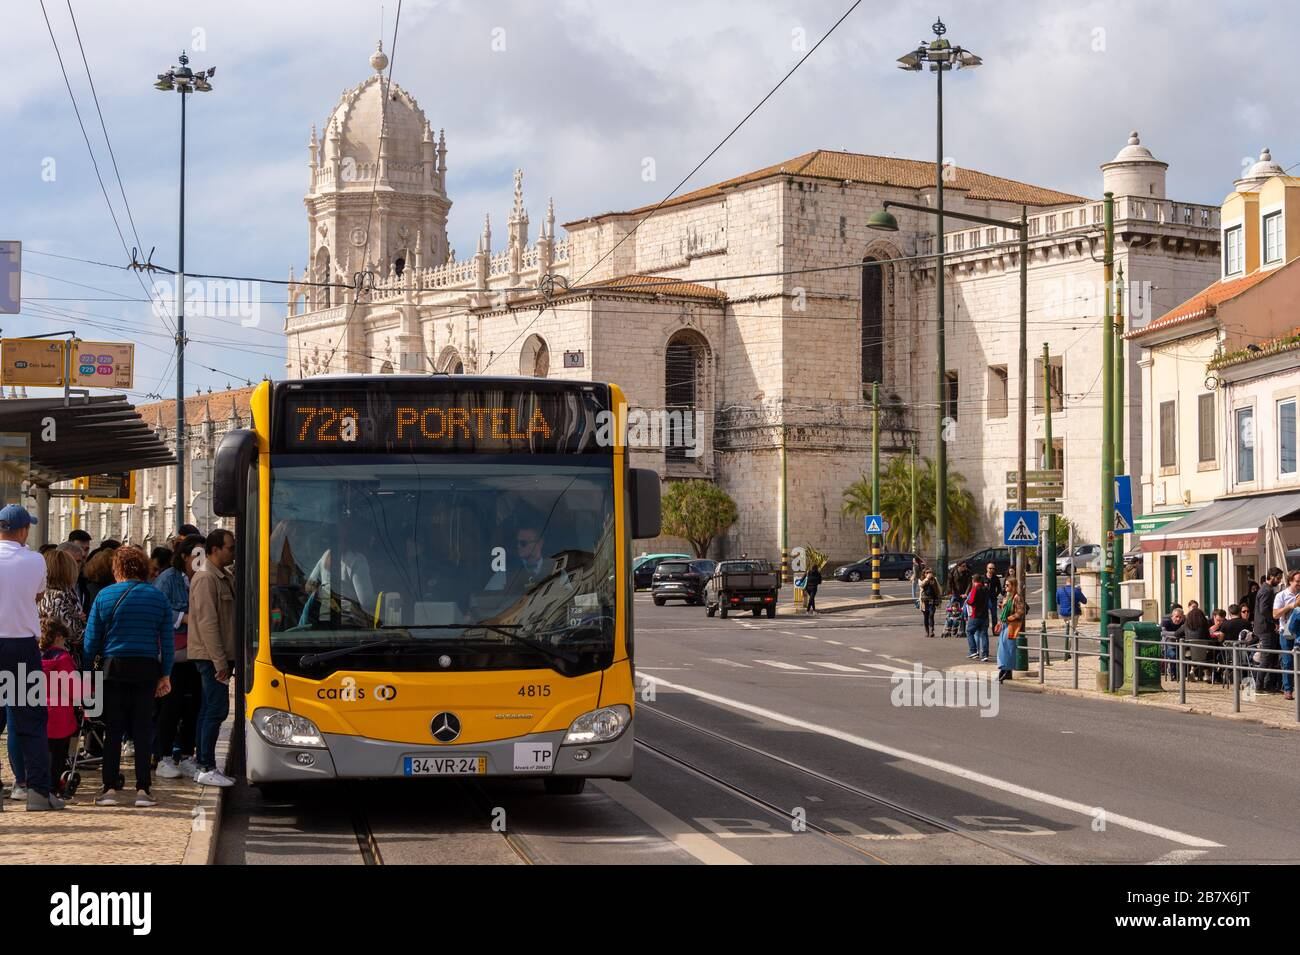 Lisbon, Portugal - 2 March 2020: Passengers boarding a Carris Bus at in the Belem district Stock Photo